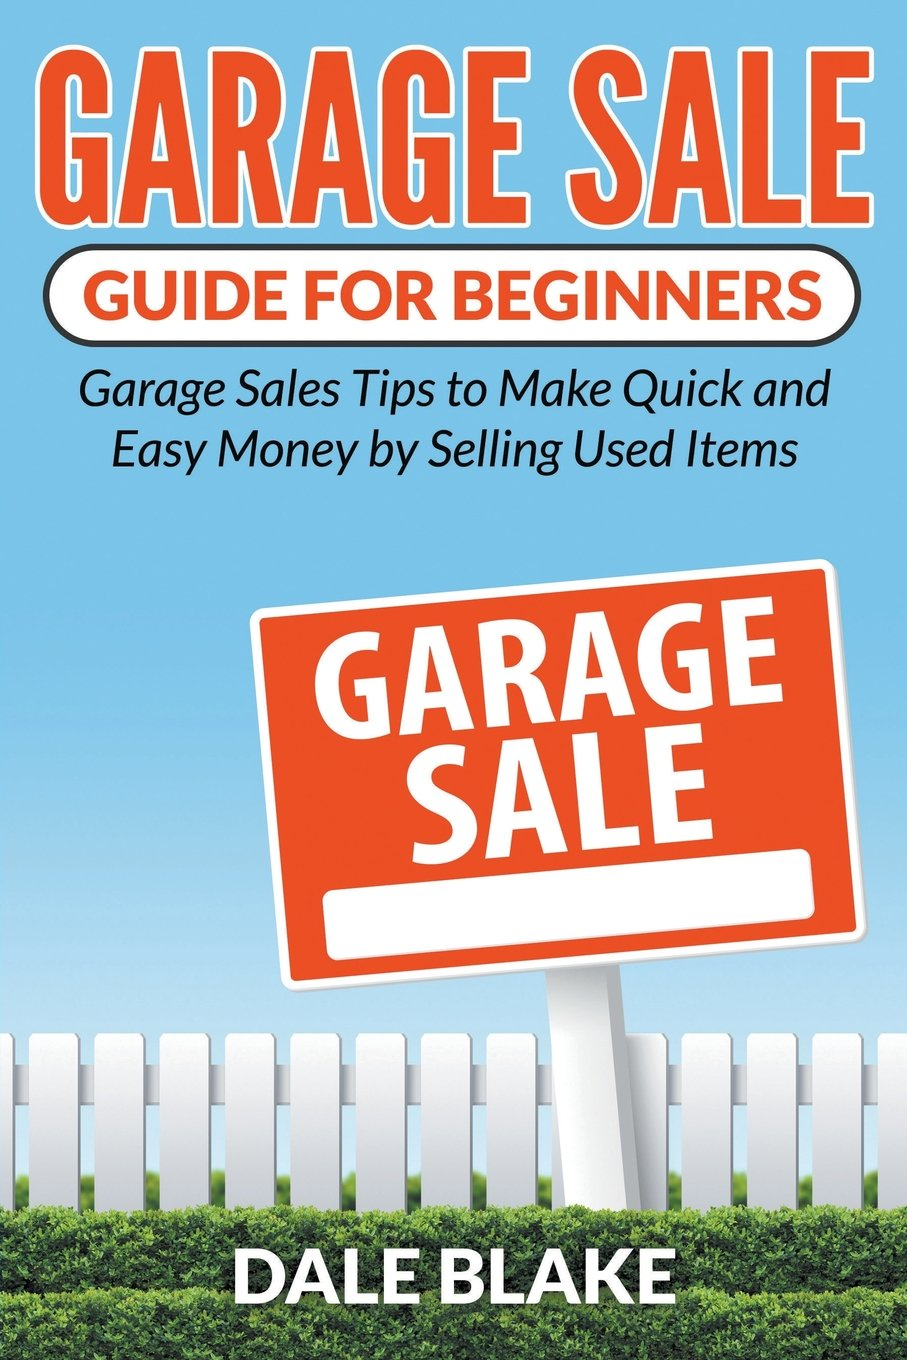 Garage Sale Guide For Beginners: Garage Sales Tips to Make